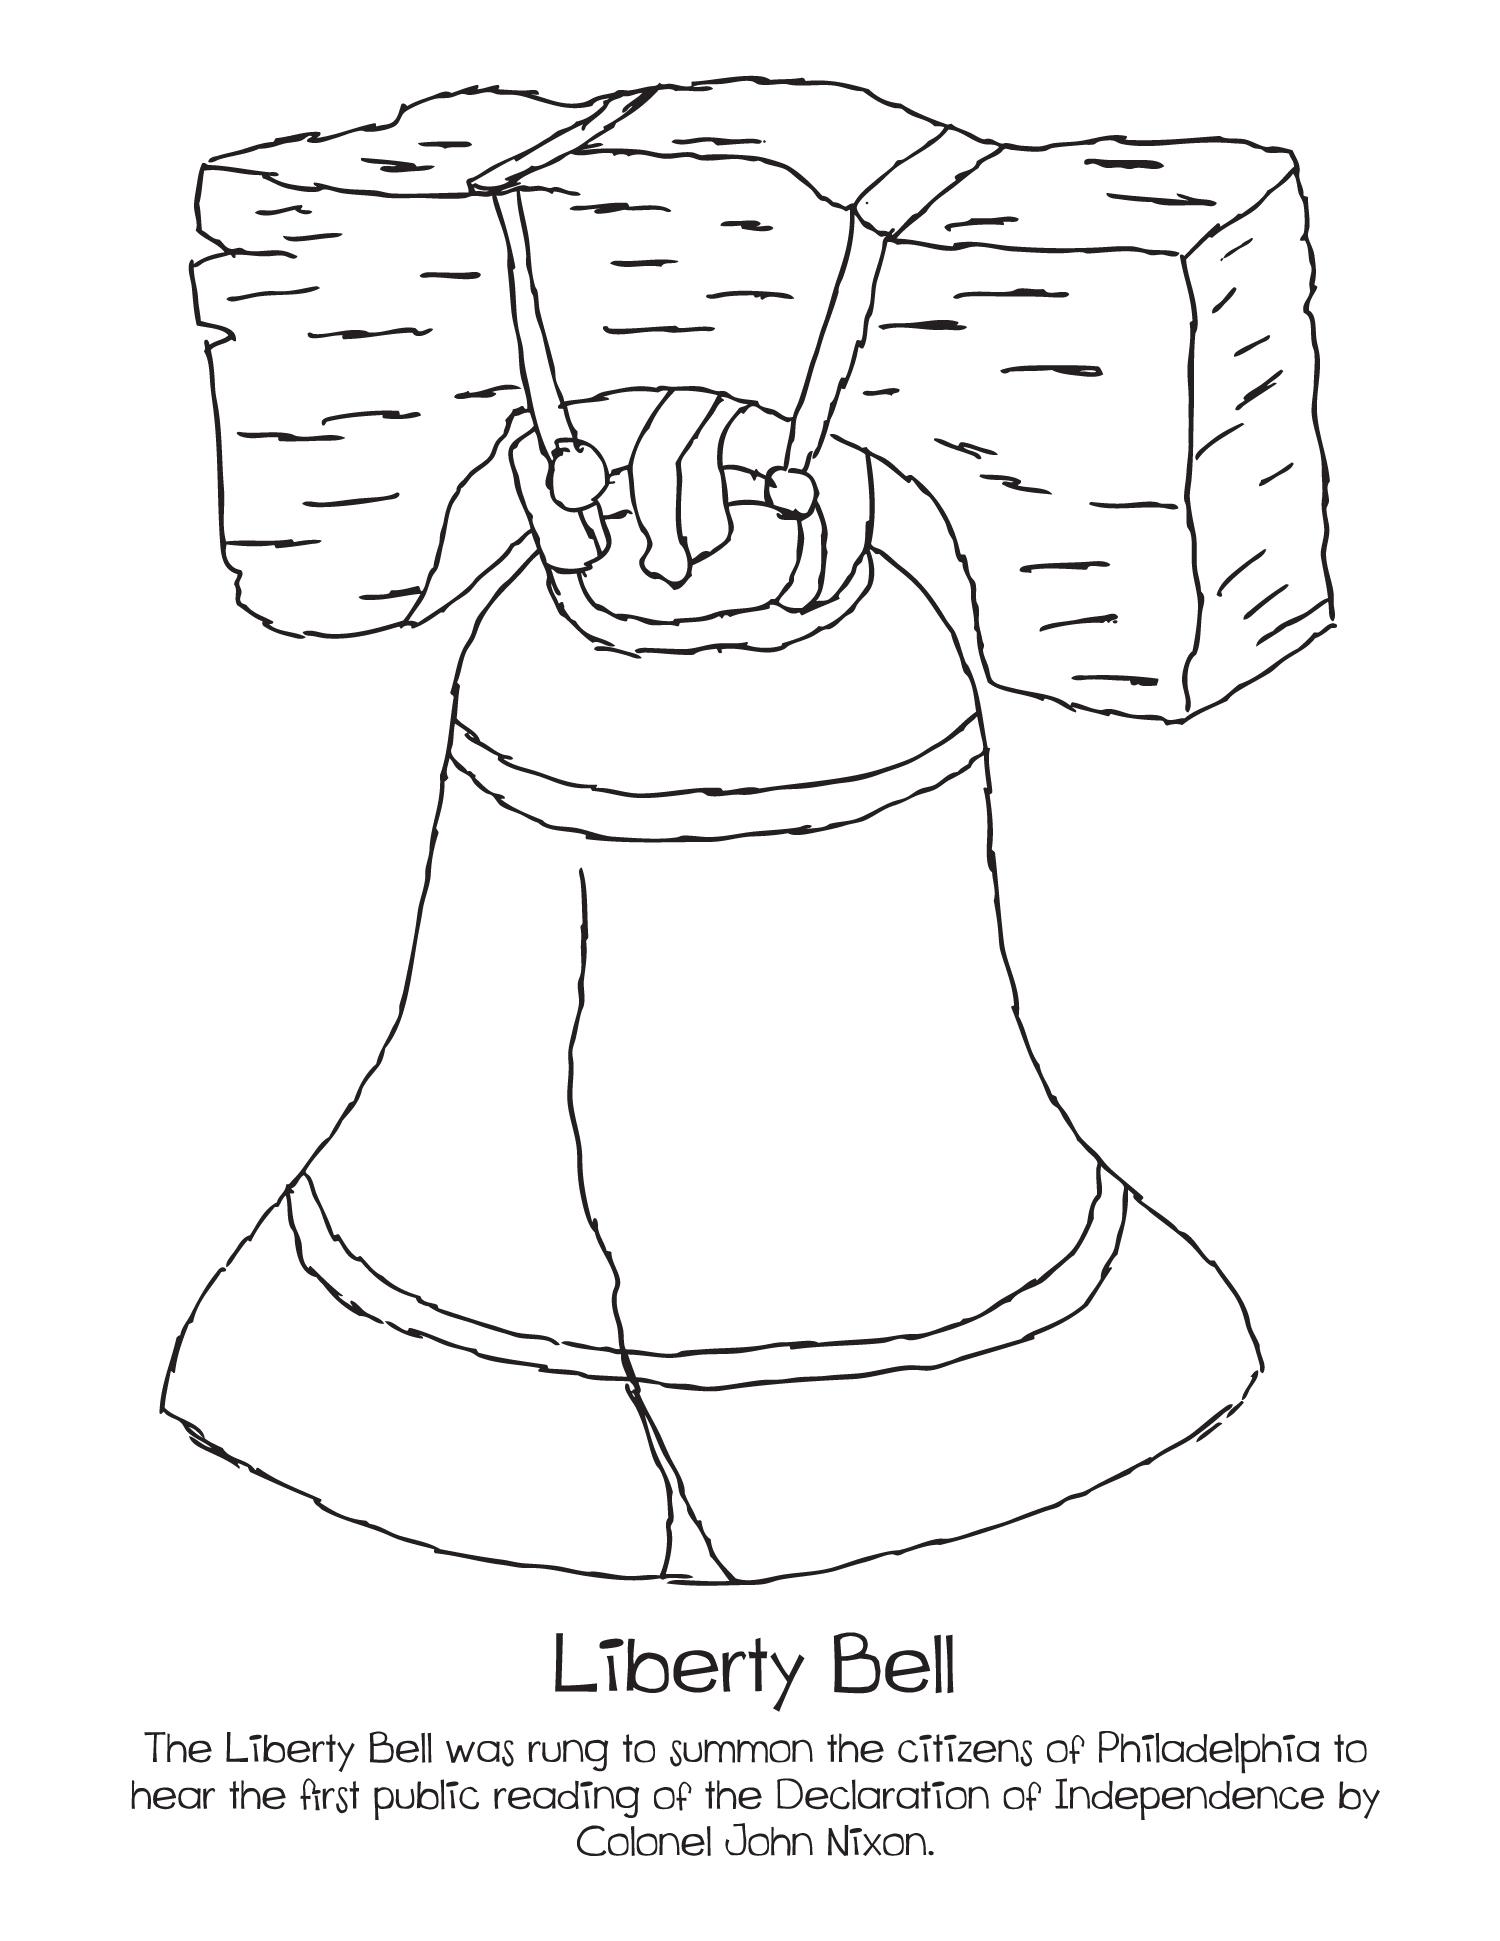 Liberty Bell Drawing at GetDrawings.com | Free for personal use ...